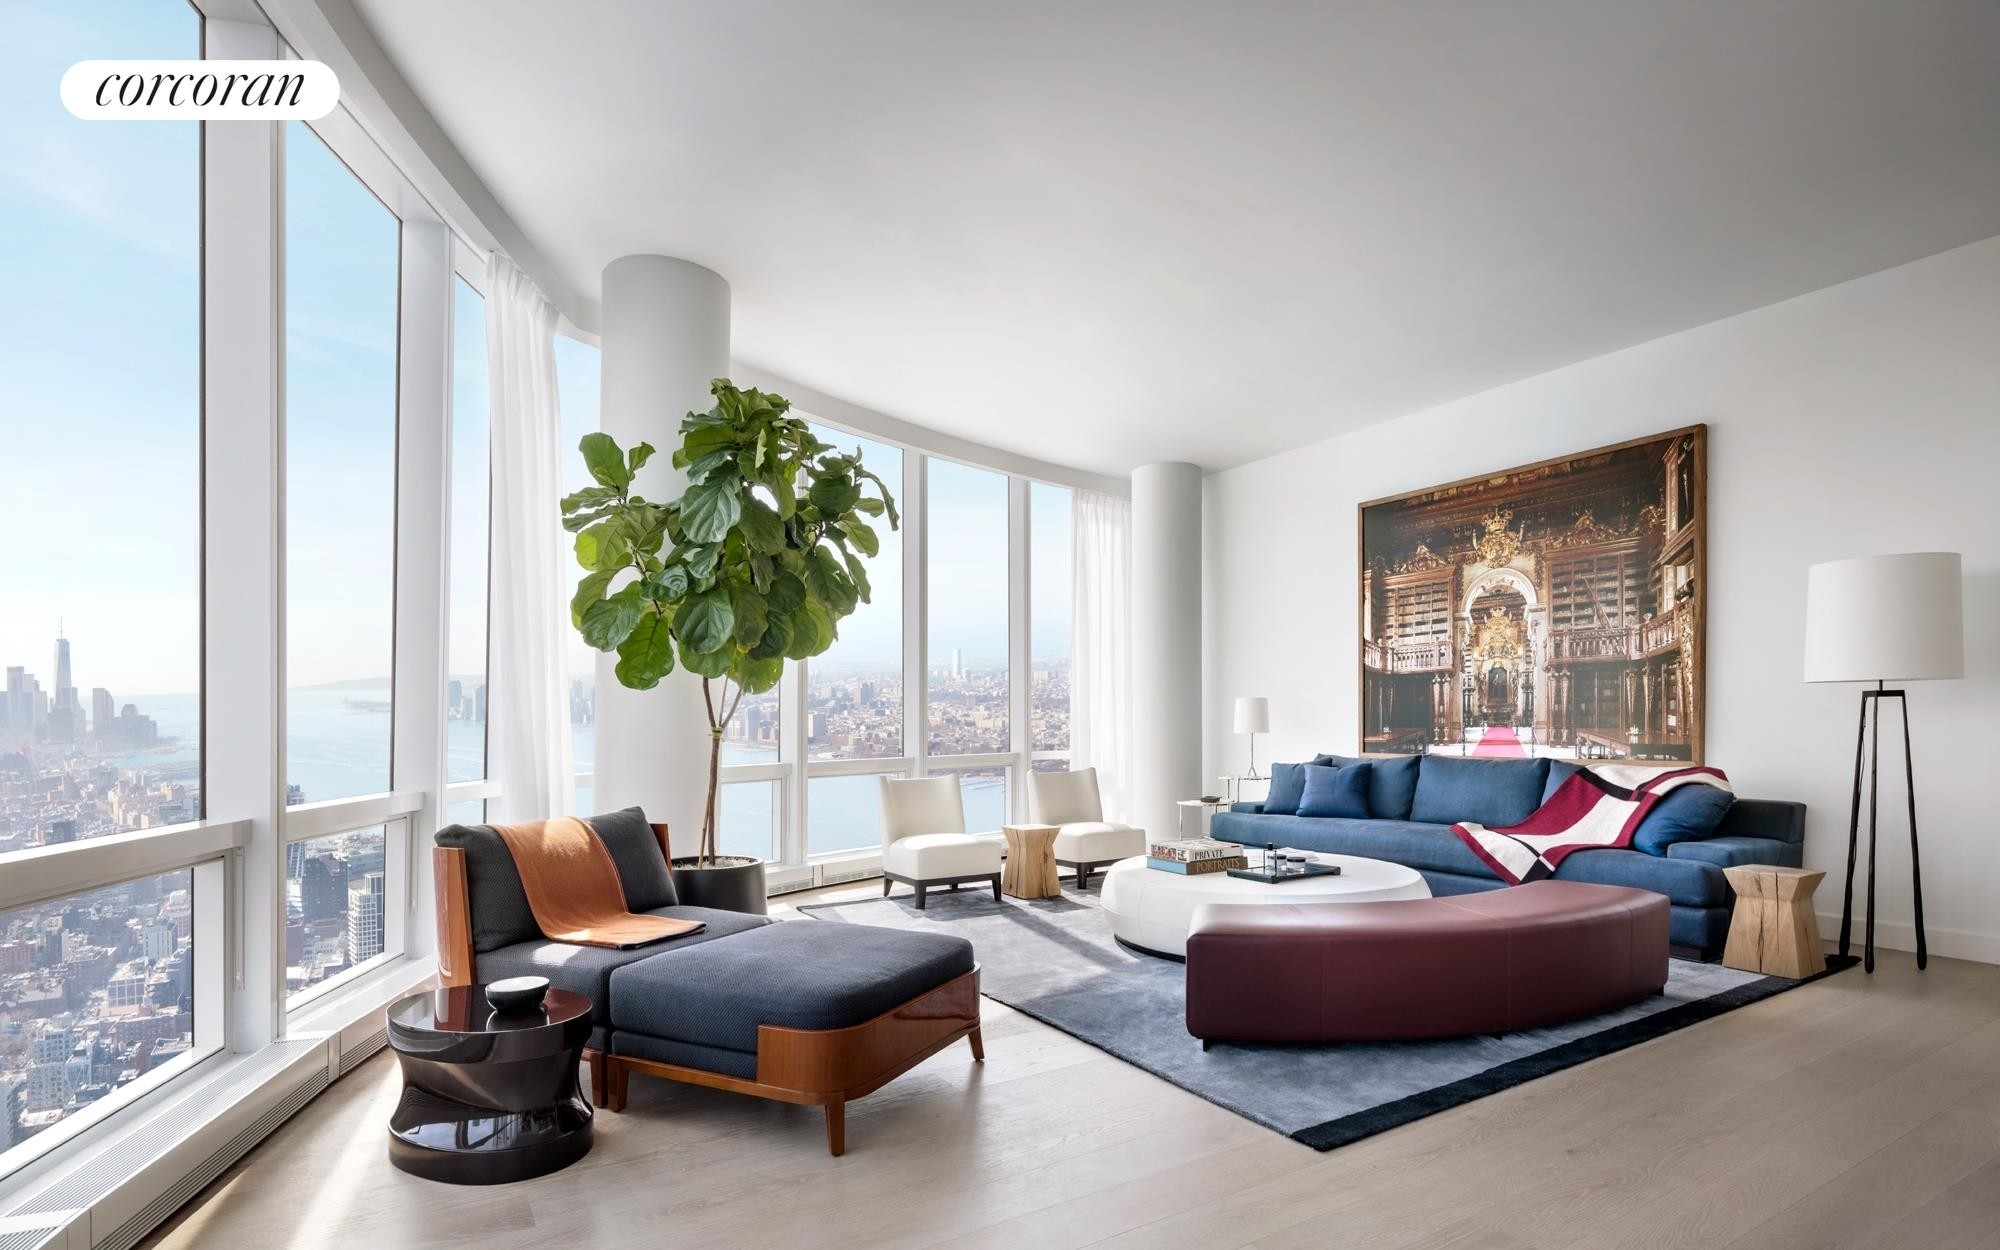 3. Condominiums for Sale at 15 Hudson Yards, 75B Hudson Yards, New York, NY 10001